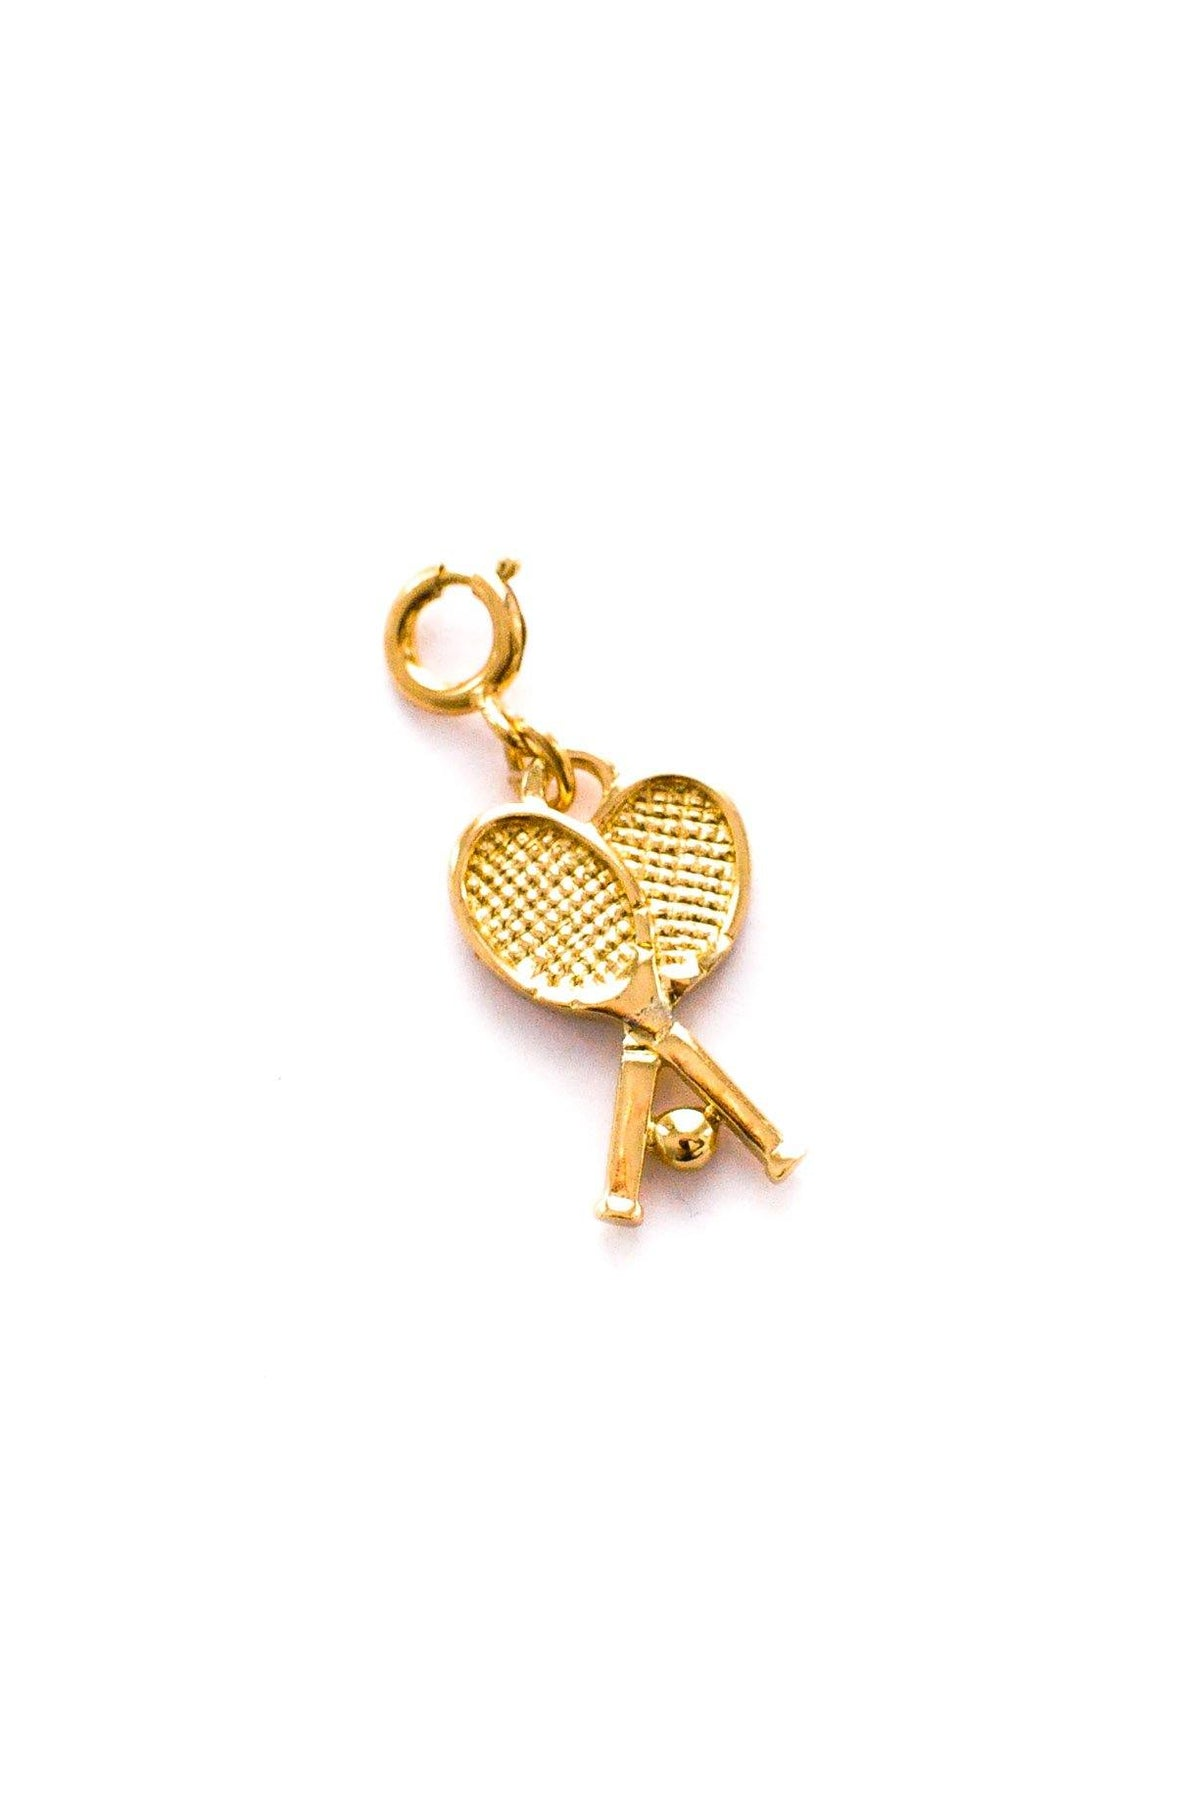 Vintage Monet Gold Tennis Racquet Charm from Sweet & Spark